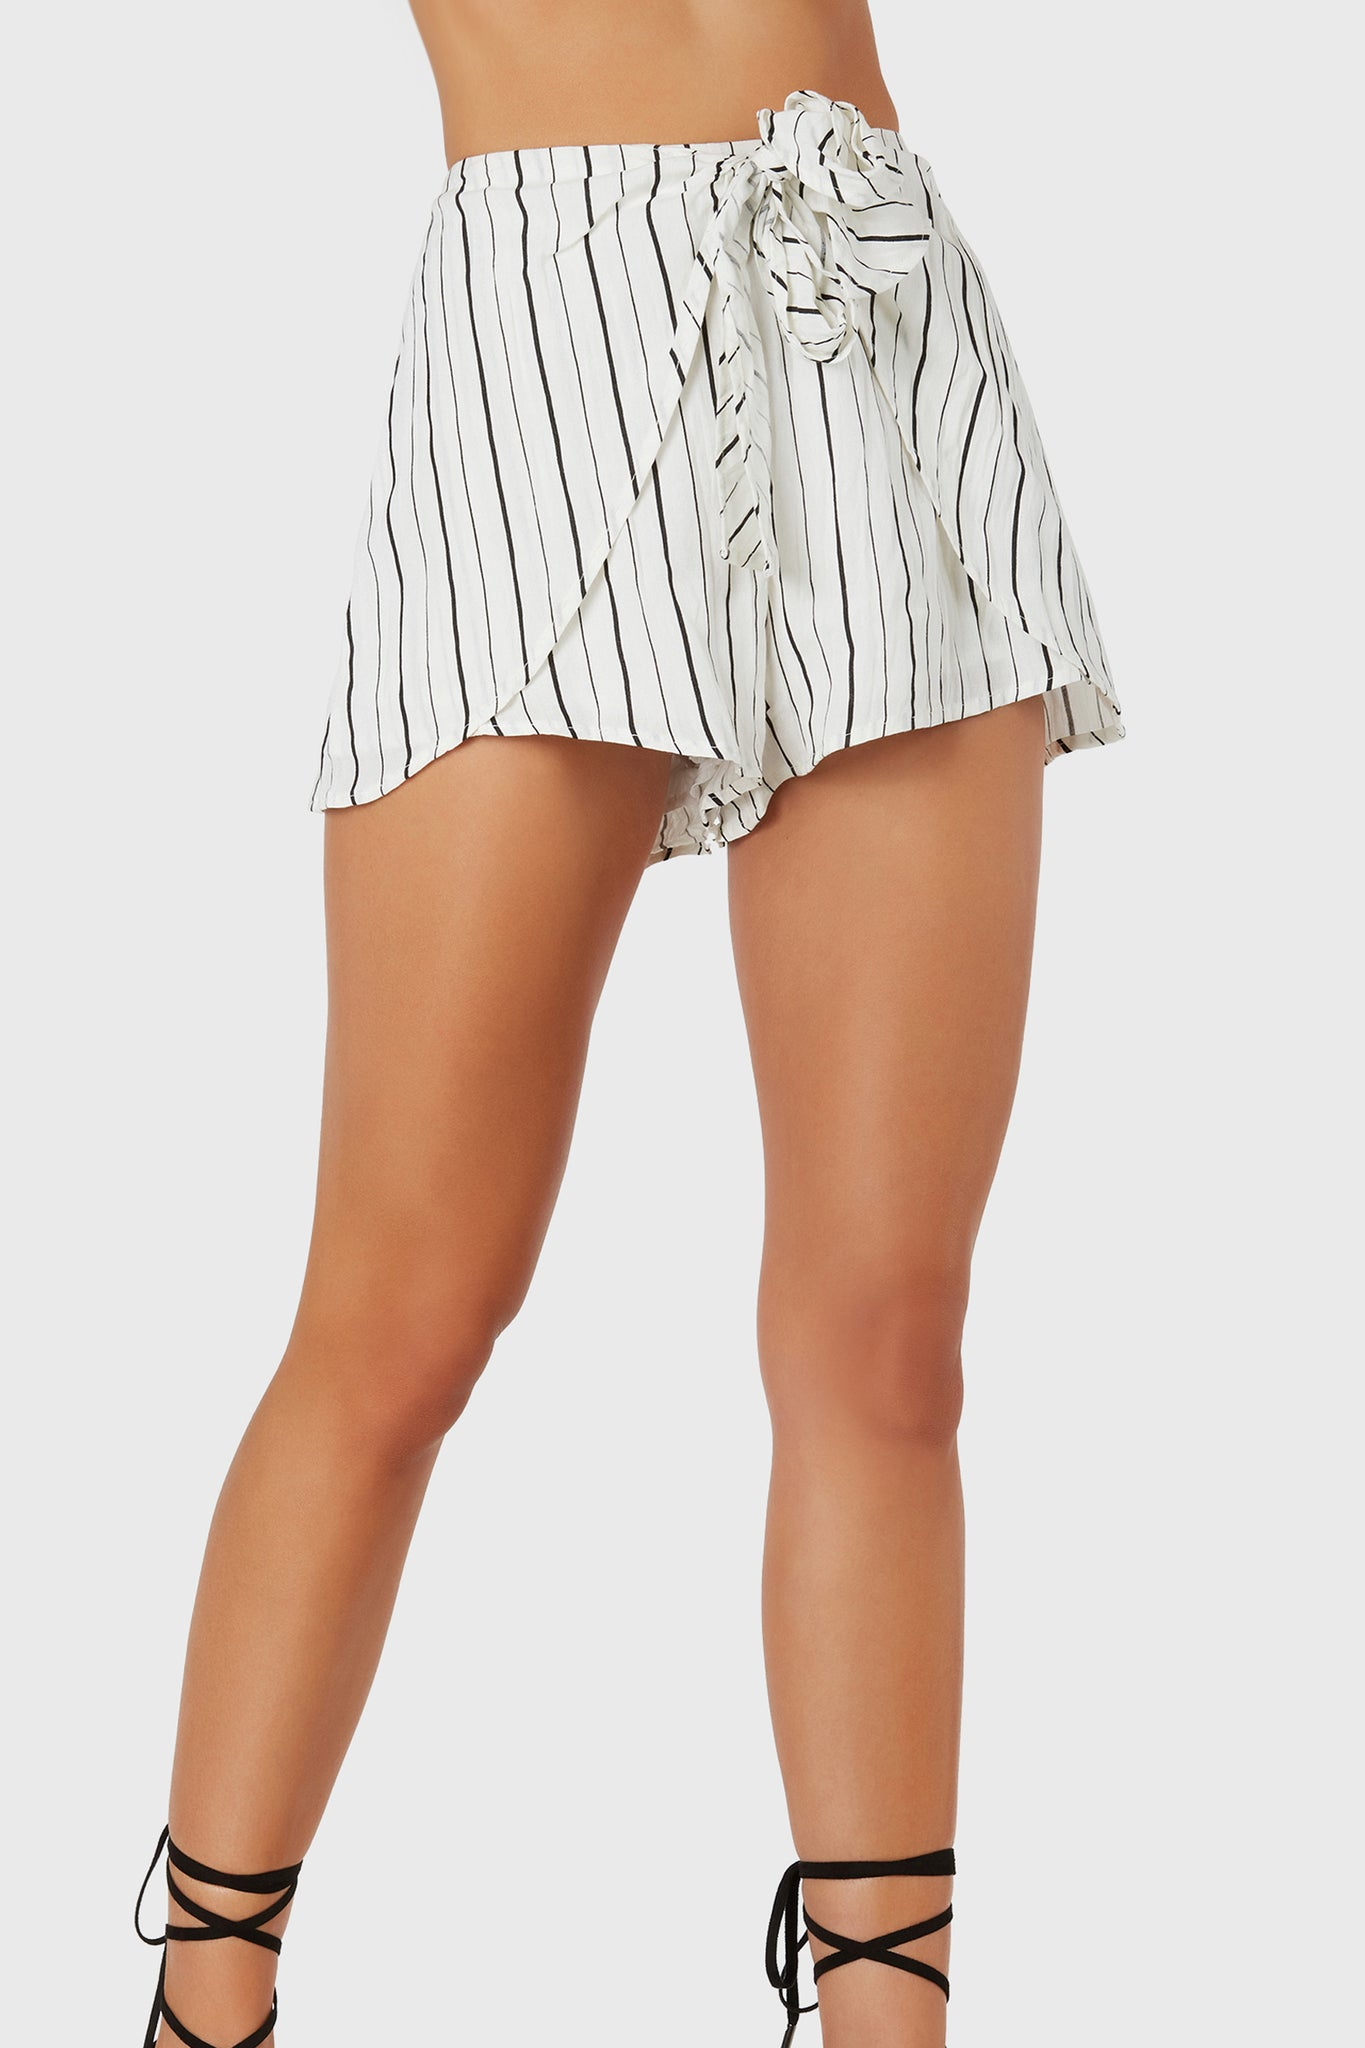 Flirty high rise shorts with stripe patterns throughout. Wrap style design with front tie detailing and back zip closure.